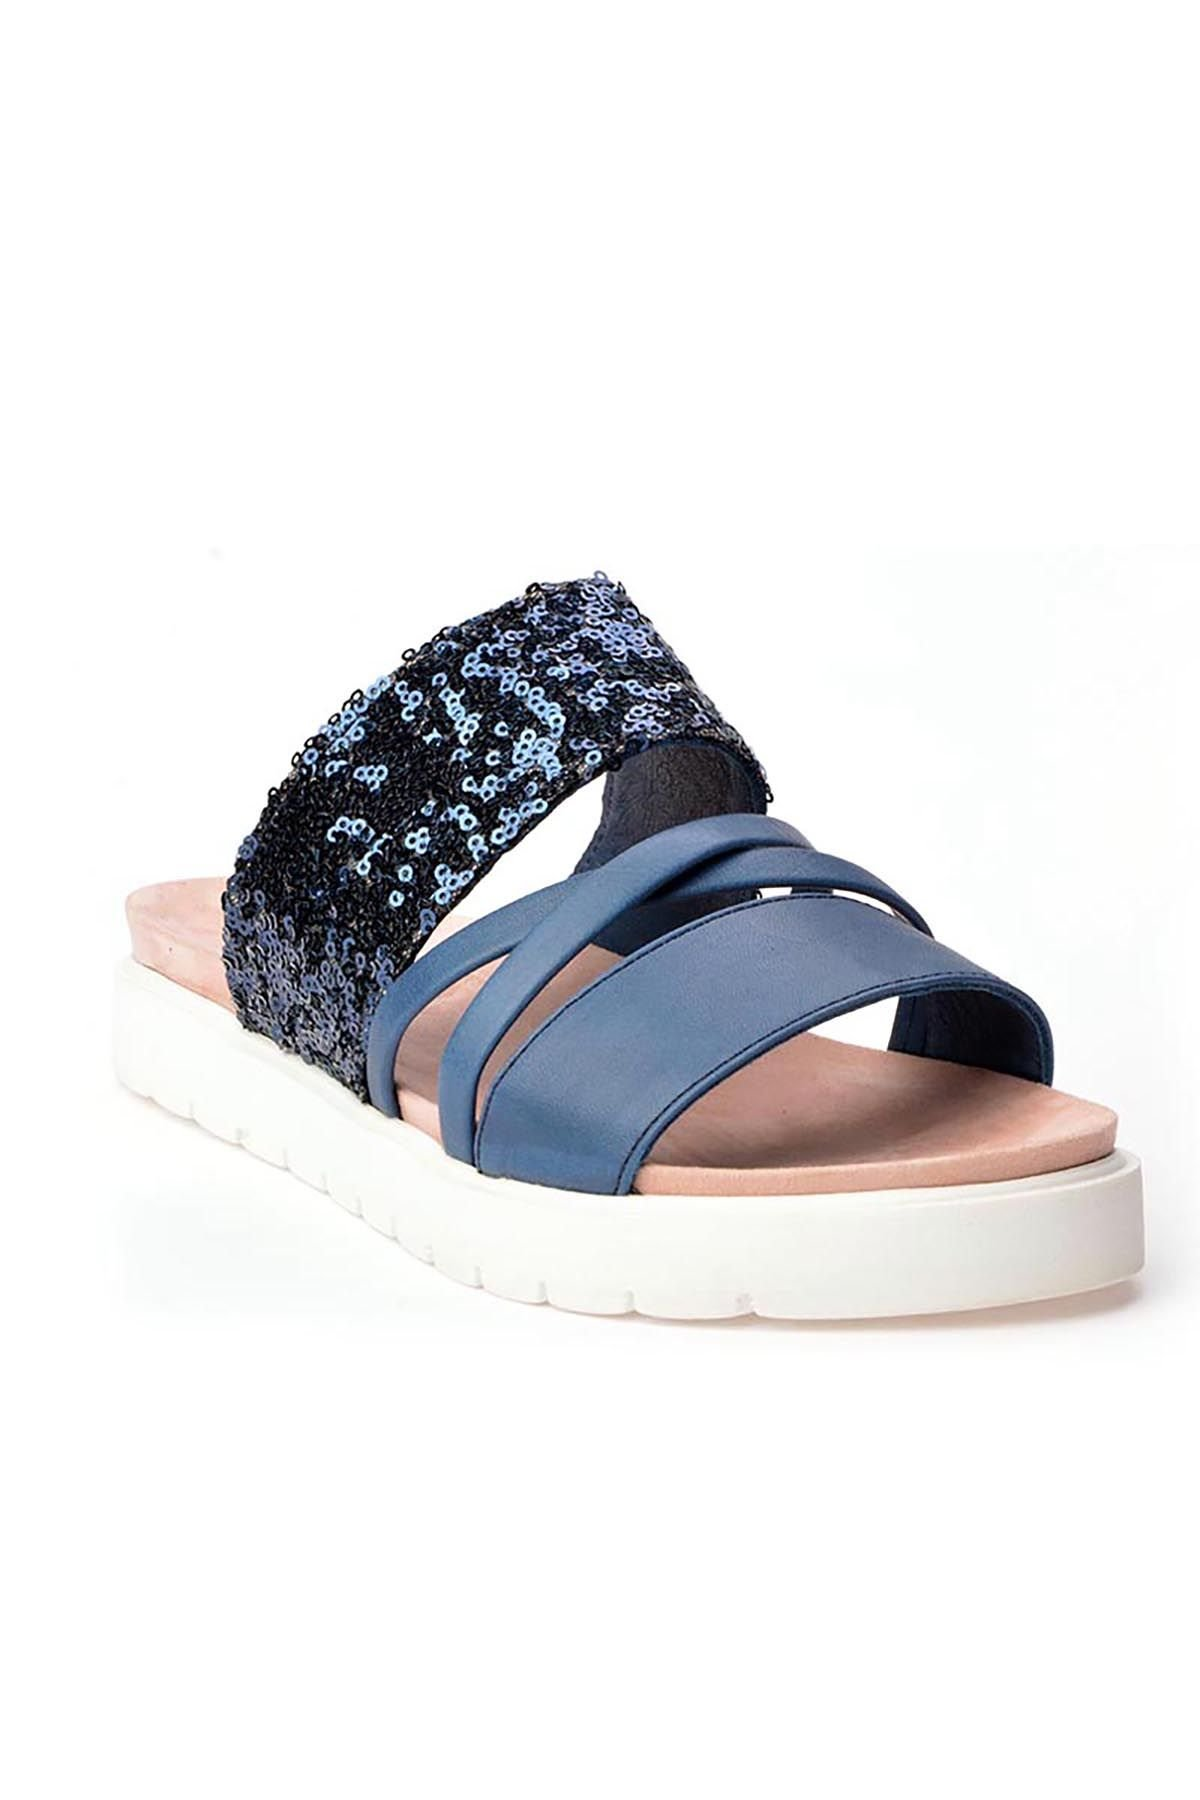 Pegia Alesia Women Slippers From Genuine Leather Blue